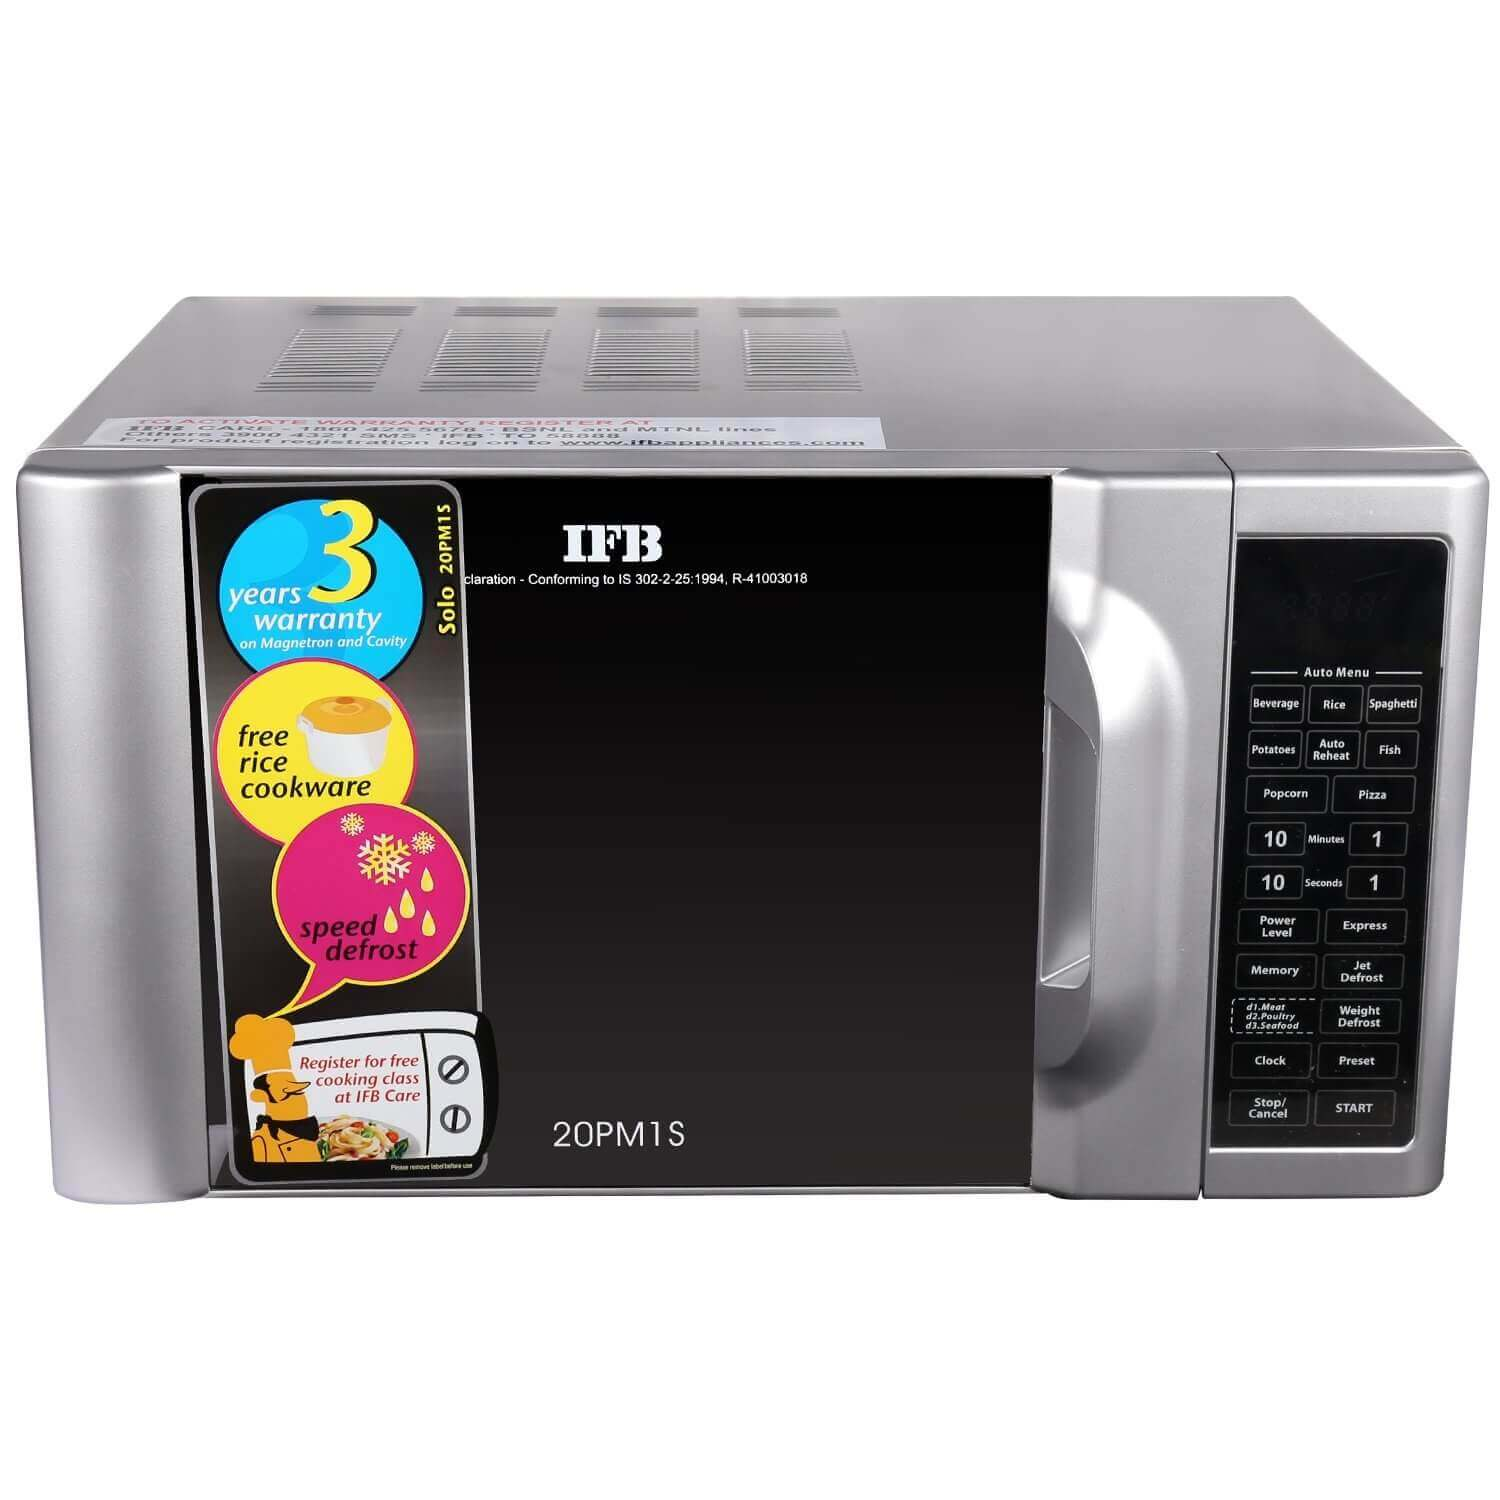 Top three best Solo Microwave Oven in India - Zelect